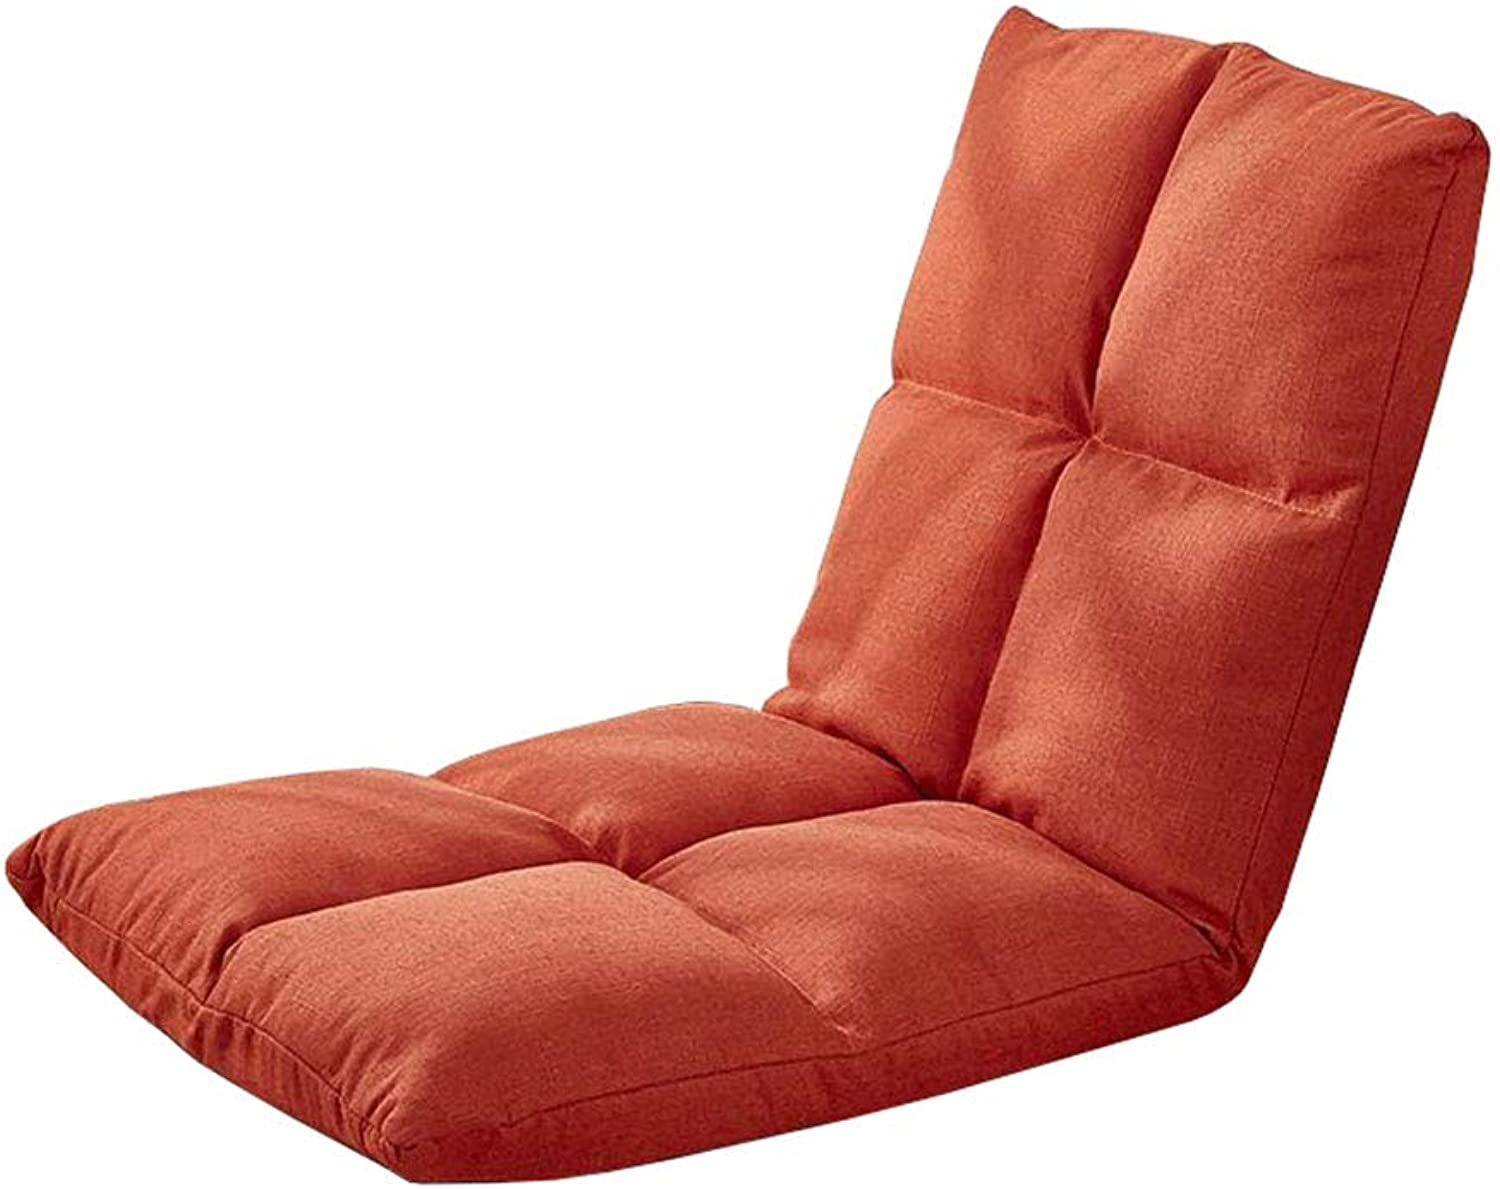 Folding Floor Chair Adjustable Backrest Home Gaming Couch Meditation Bay Window Computer Chaise (orange)